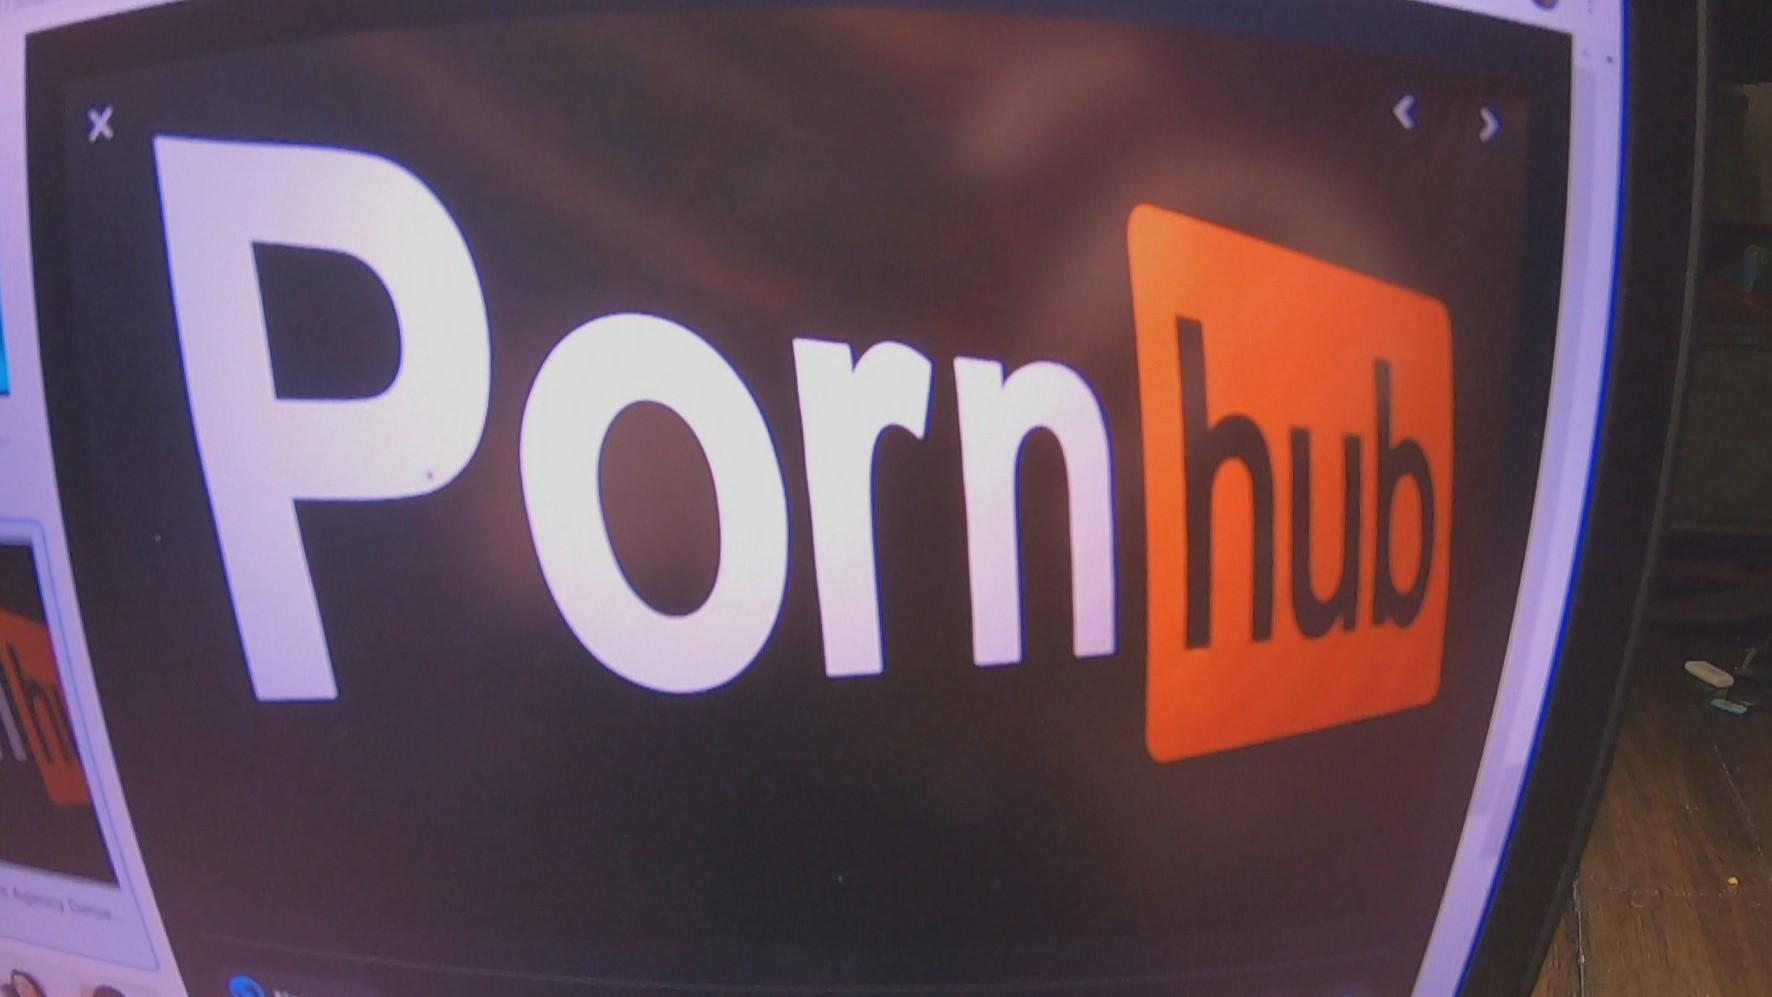 MONDAY at 10: Utah's porn health crisis-what's changed in four years? (Photo: KUTV)